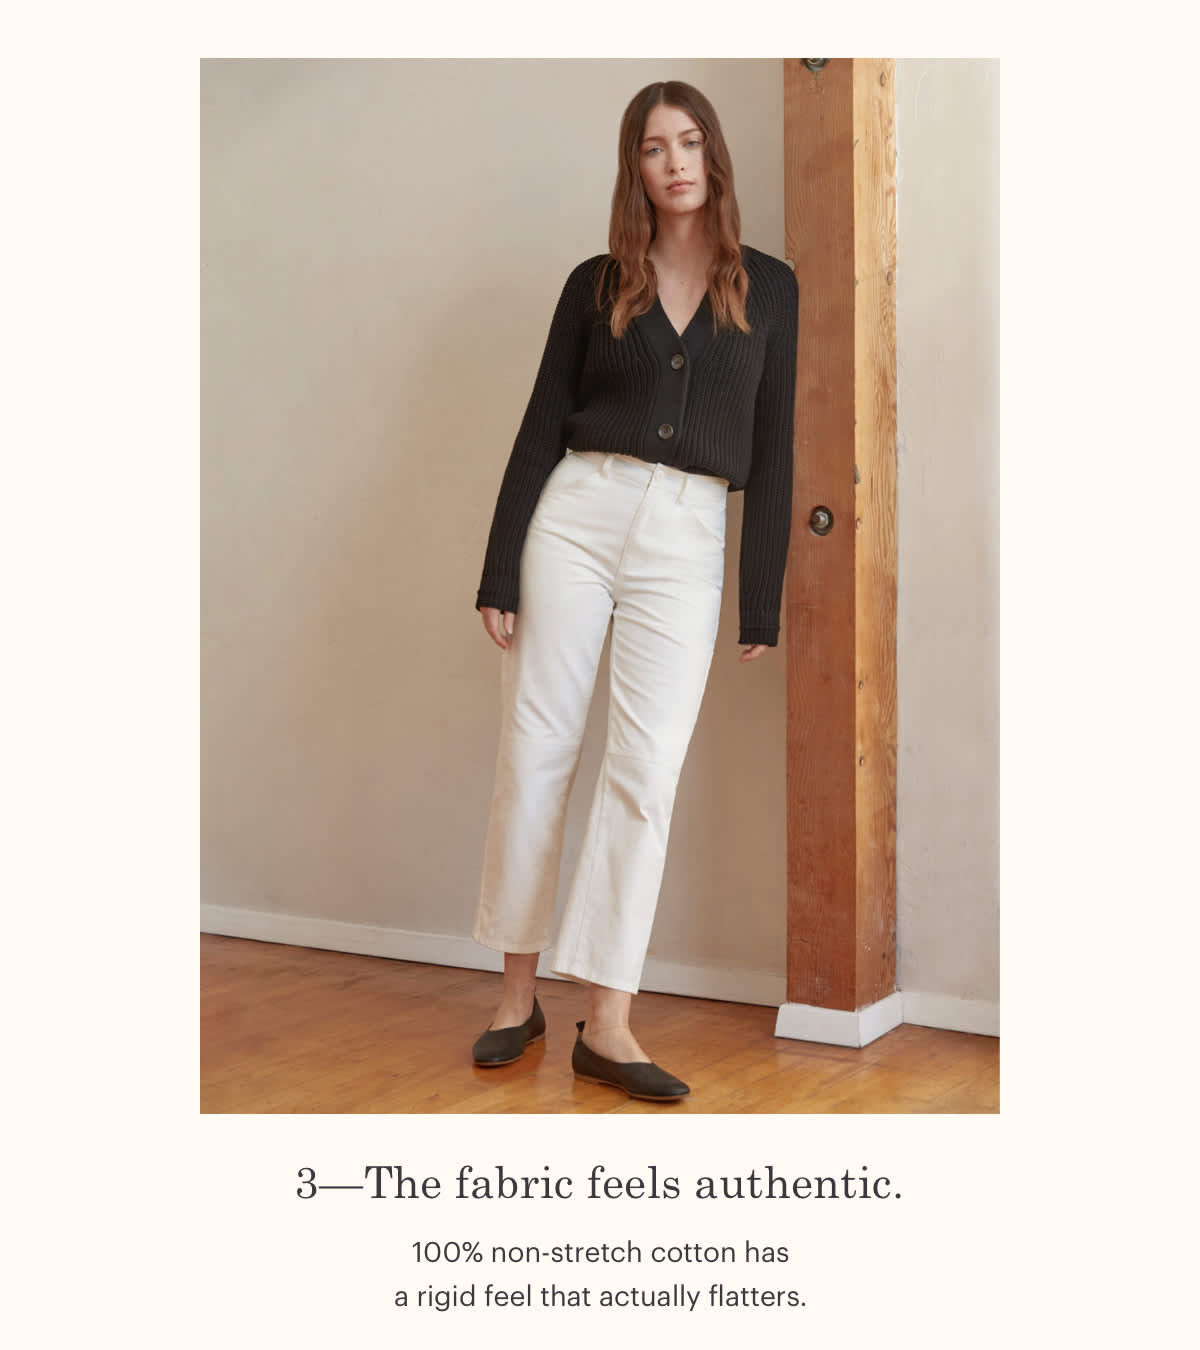 3 - The fabric feels authentic.